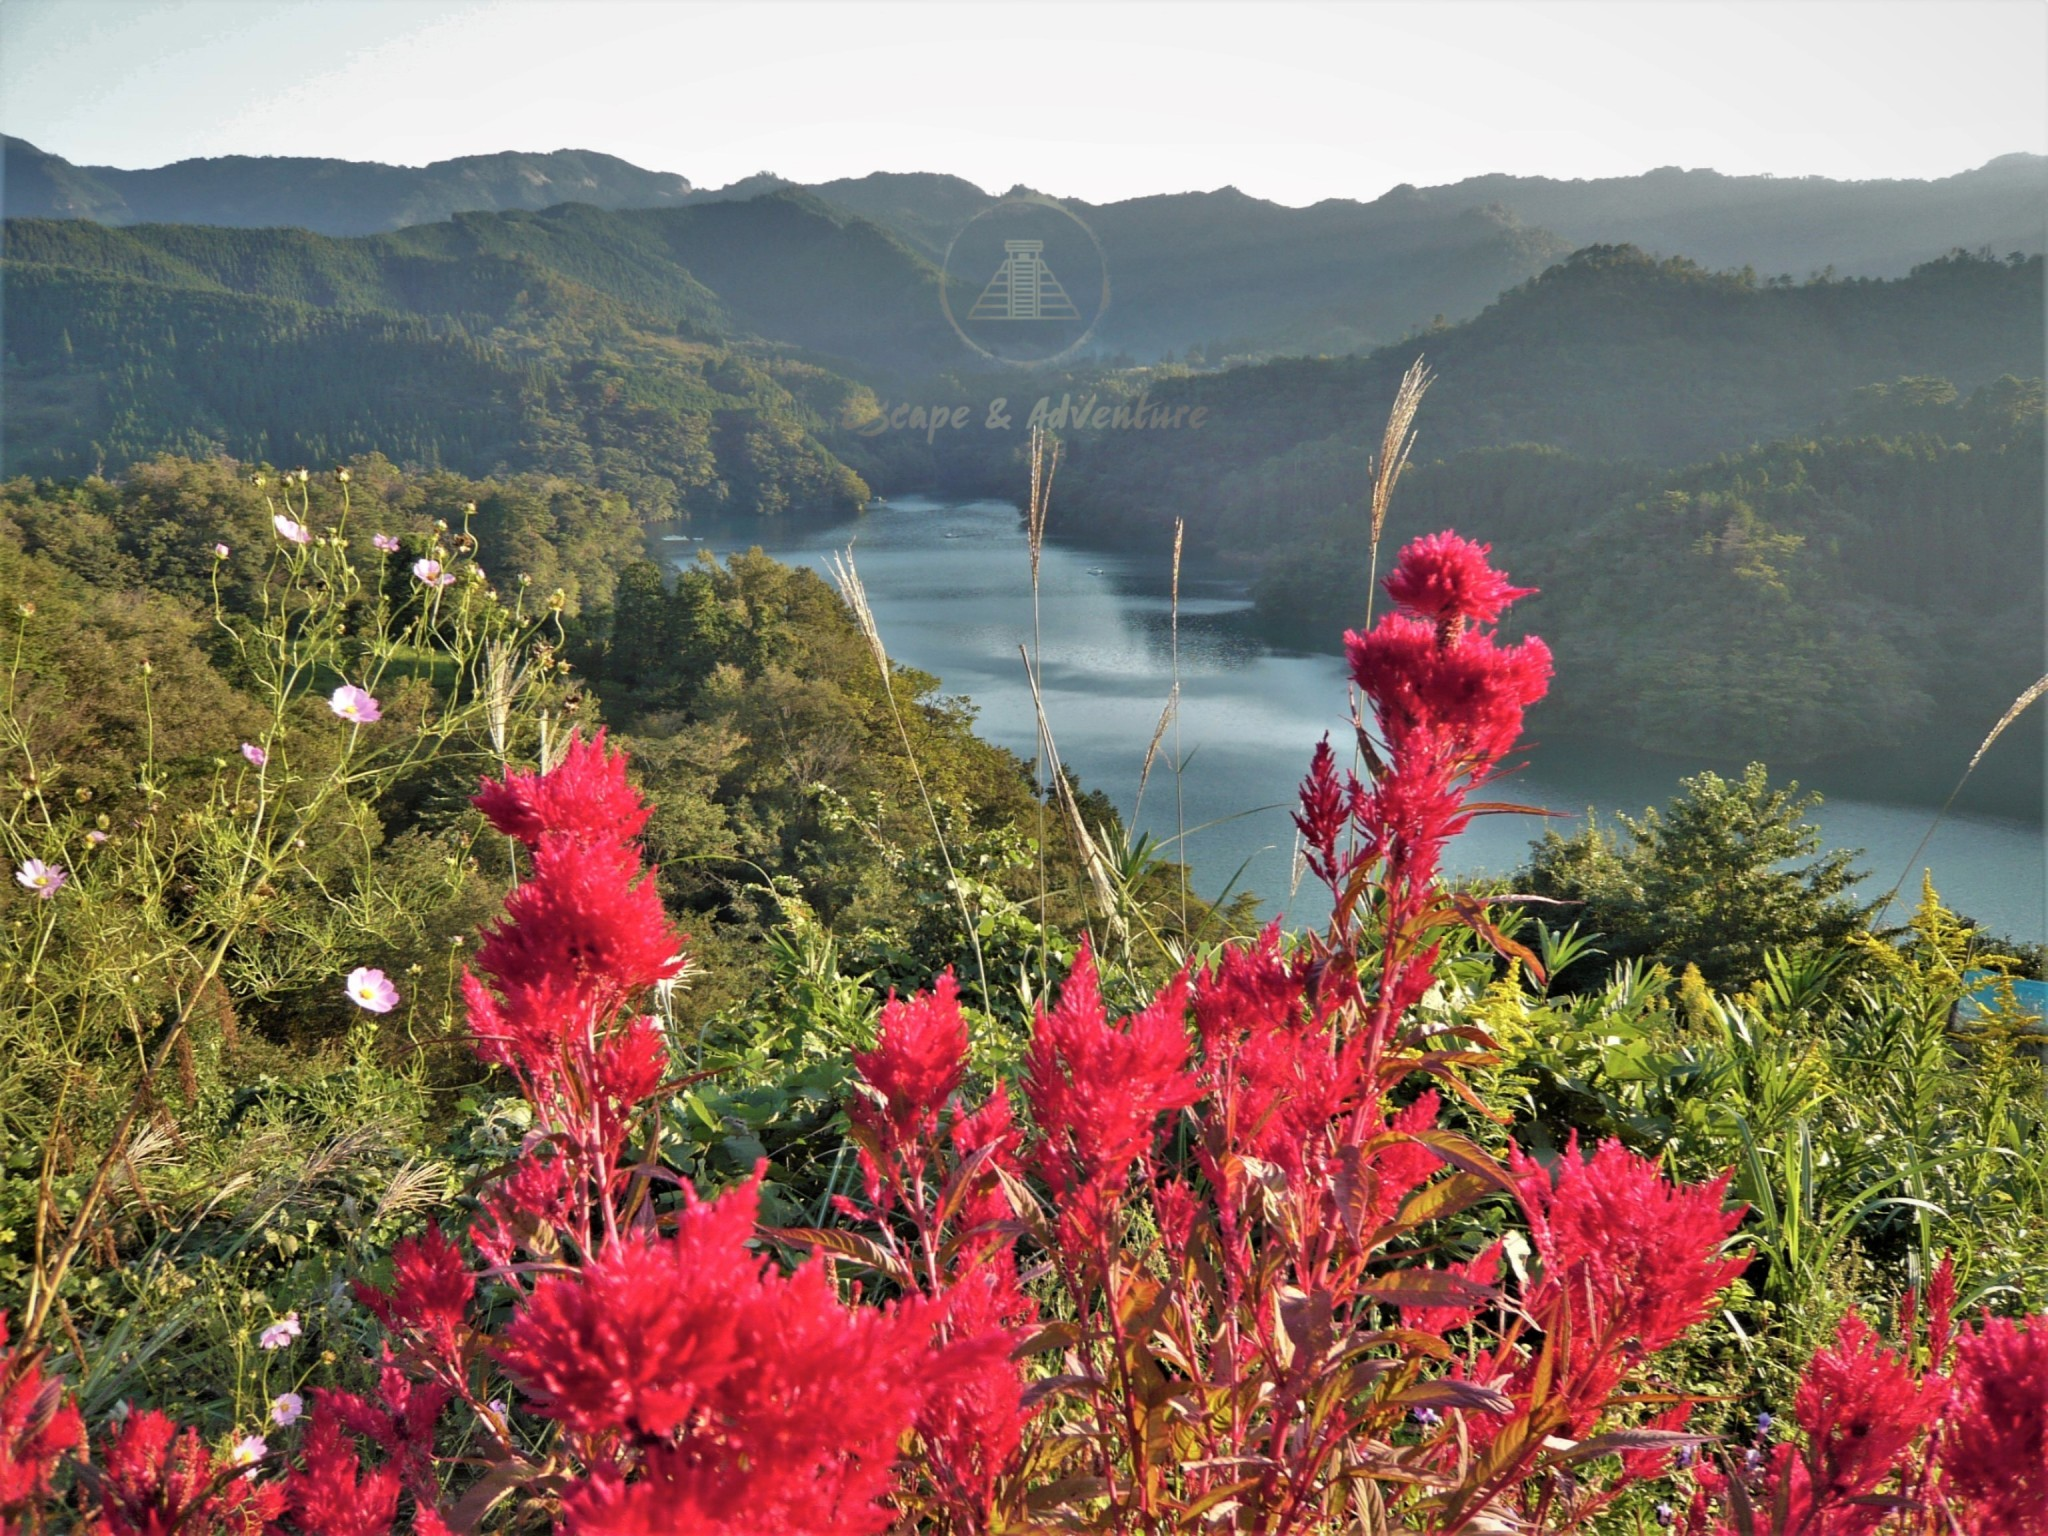 Scenic lake surrounded by verdant green mountains with bright red flowers in the foreground.